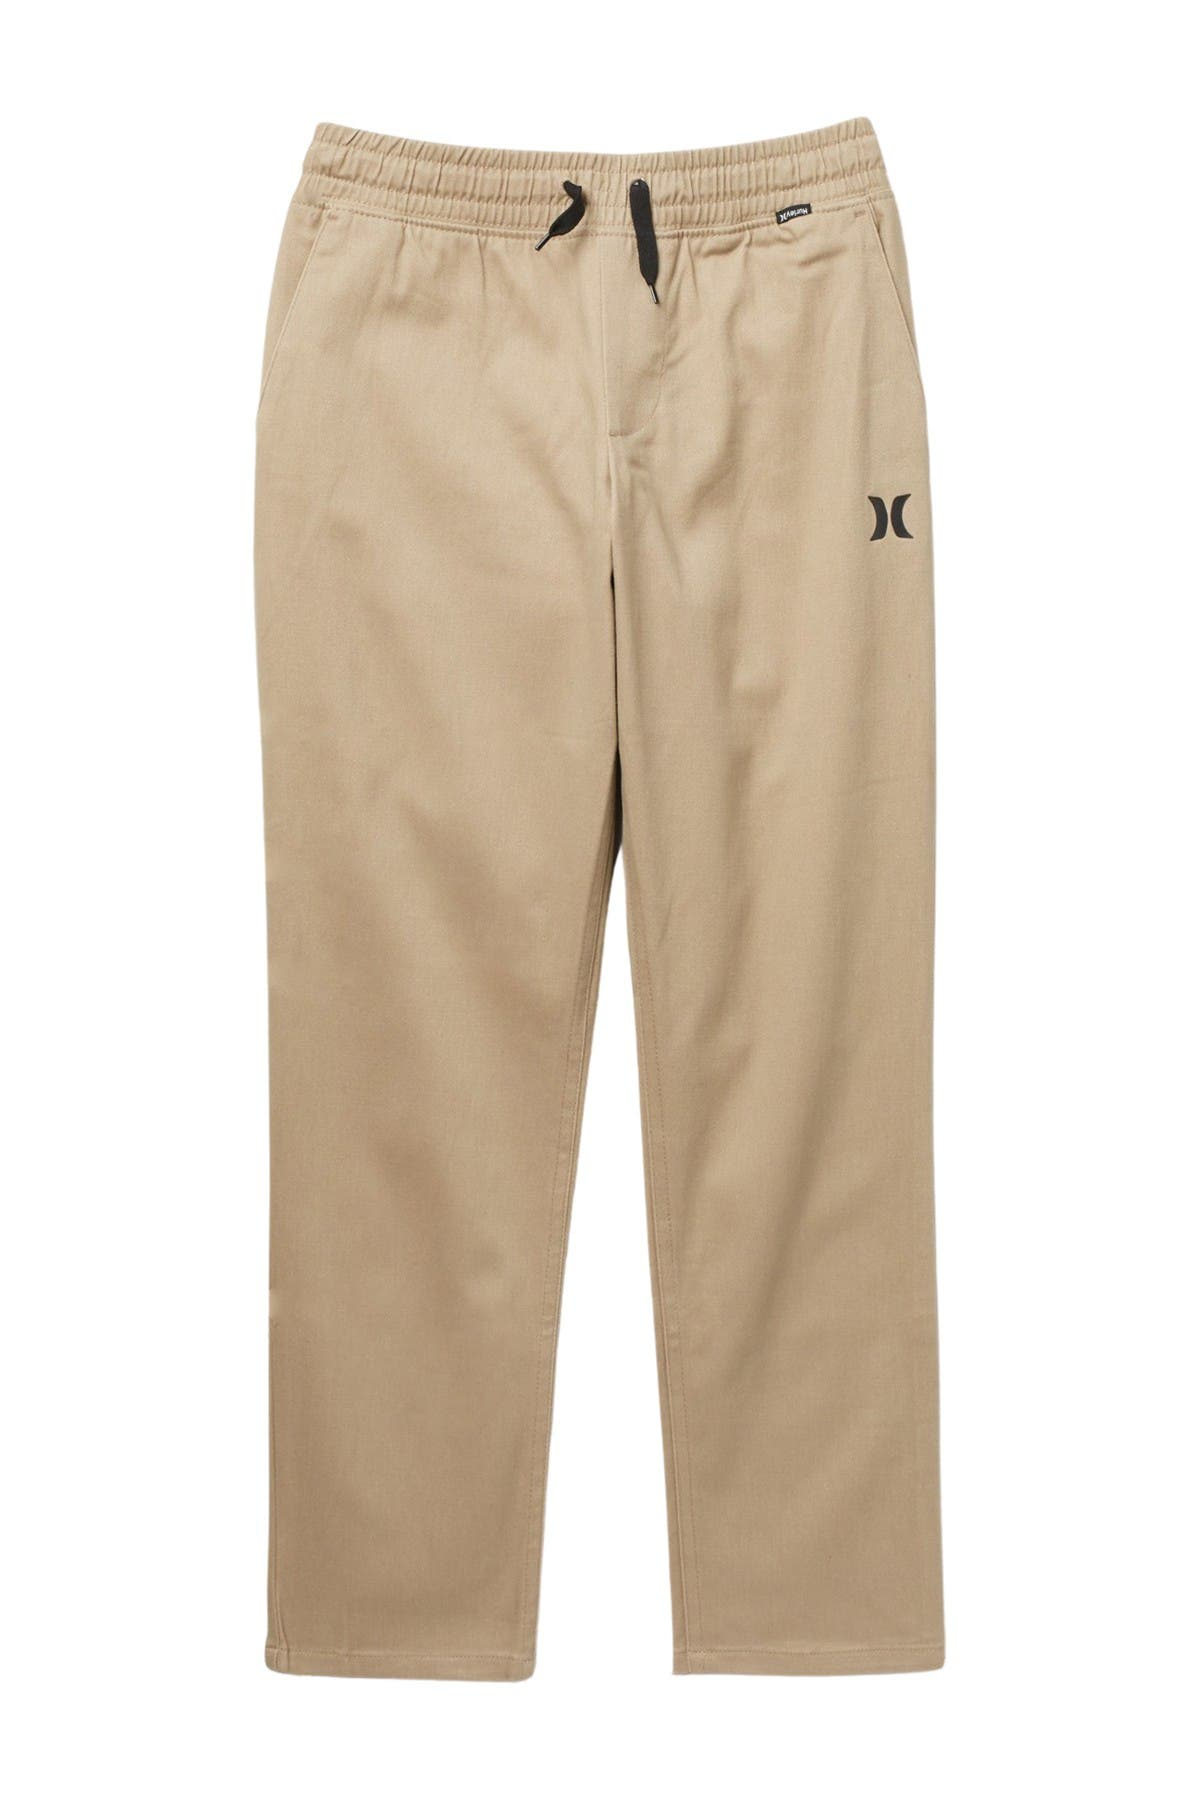 Image of Hurley Dri-FIT Tapered Pants